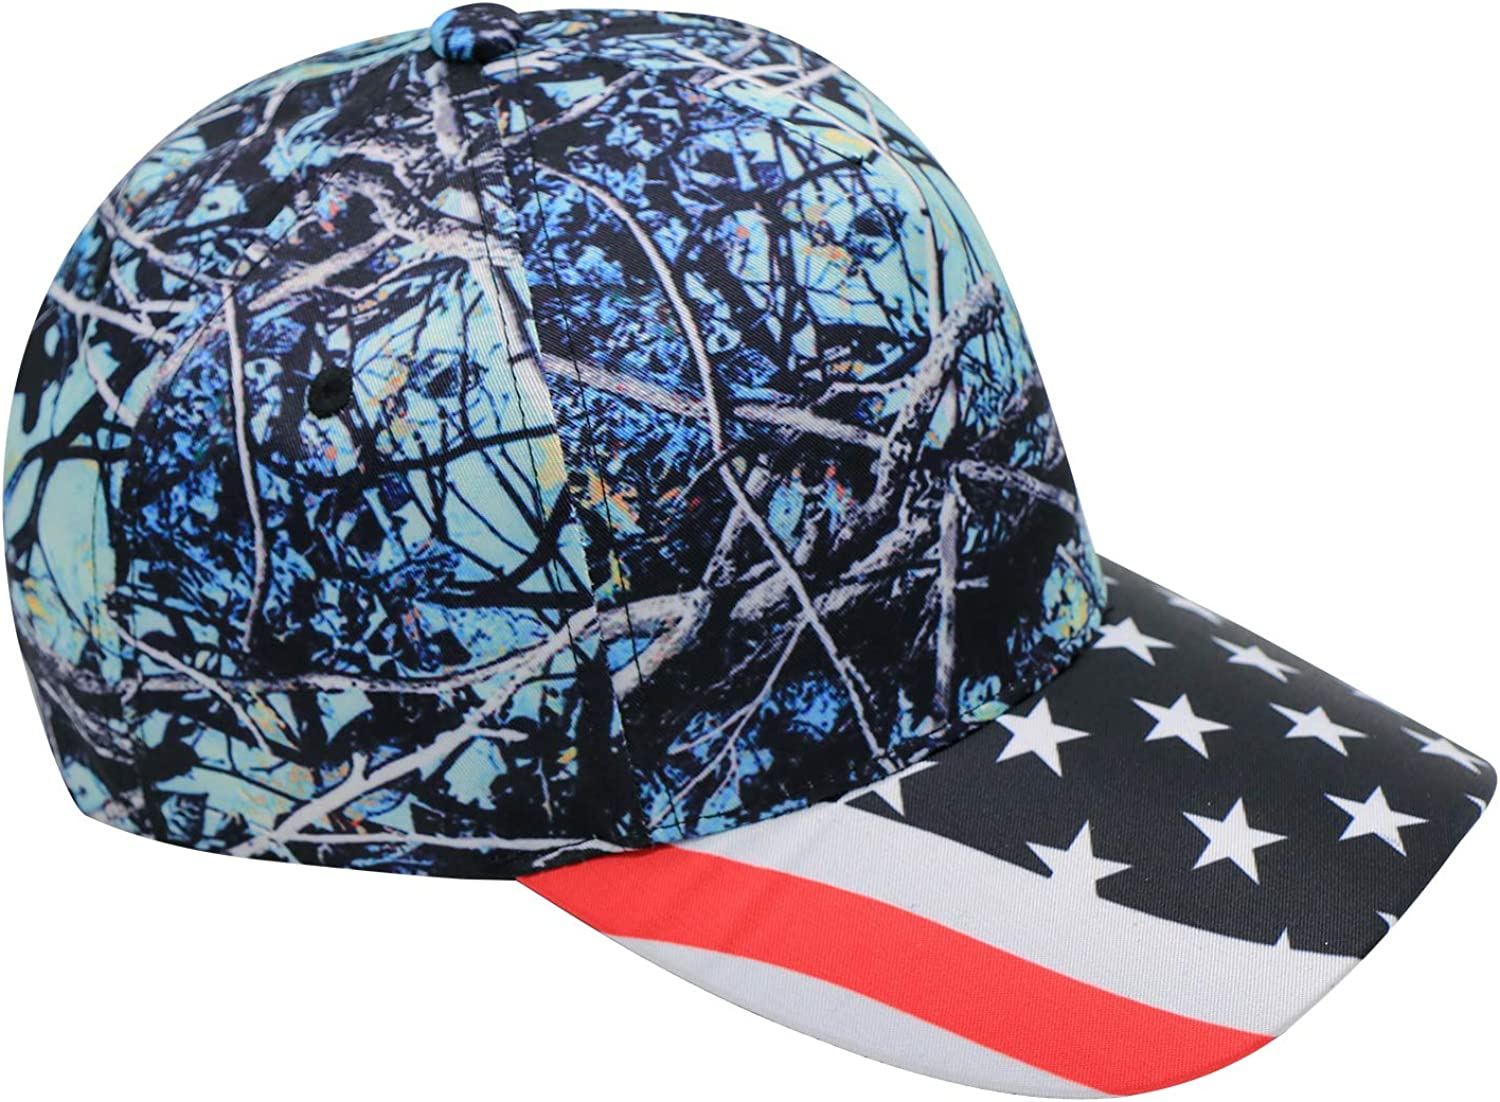 MYHAT Impeach Trump 2020 Adjustable Baseball Tree Camouflage Caps,Peaked Hats for Womens//Mens